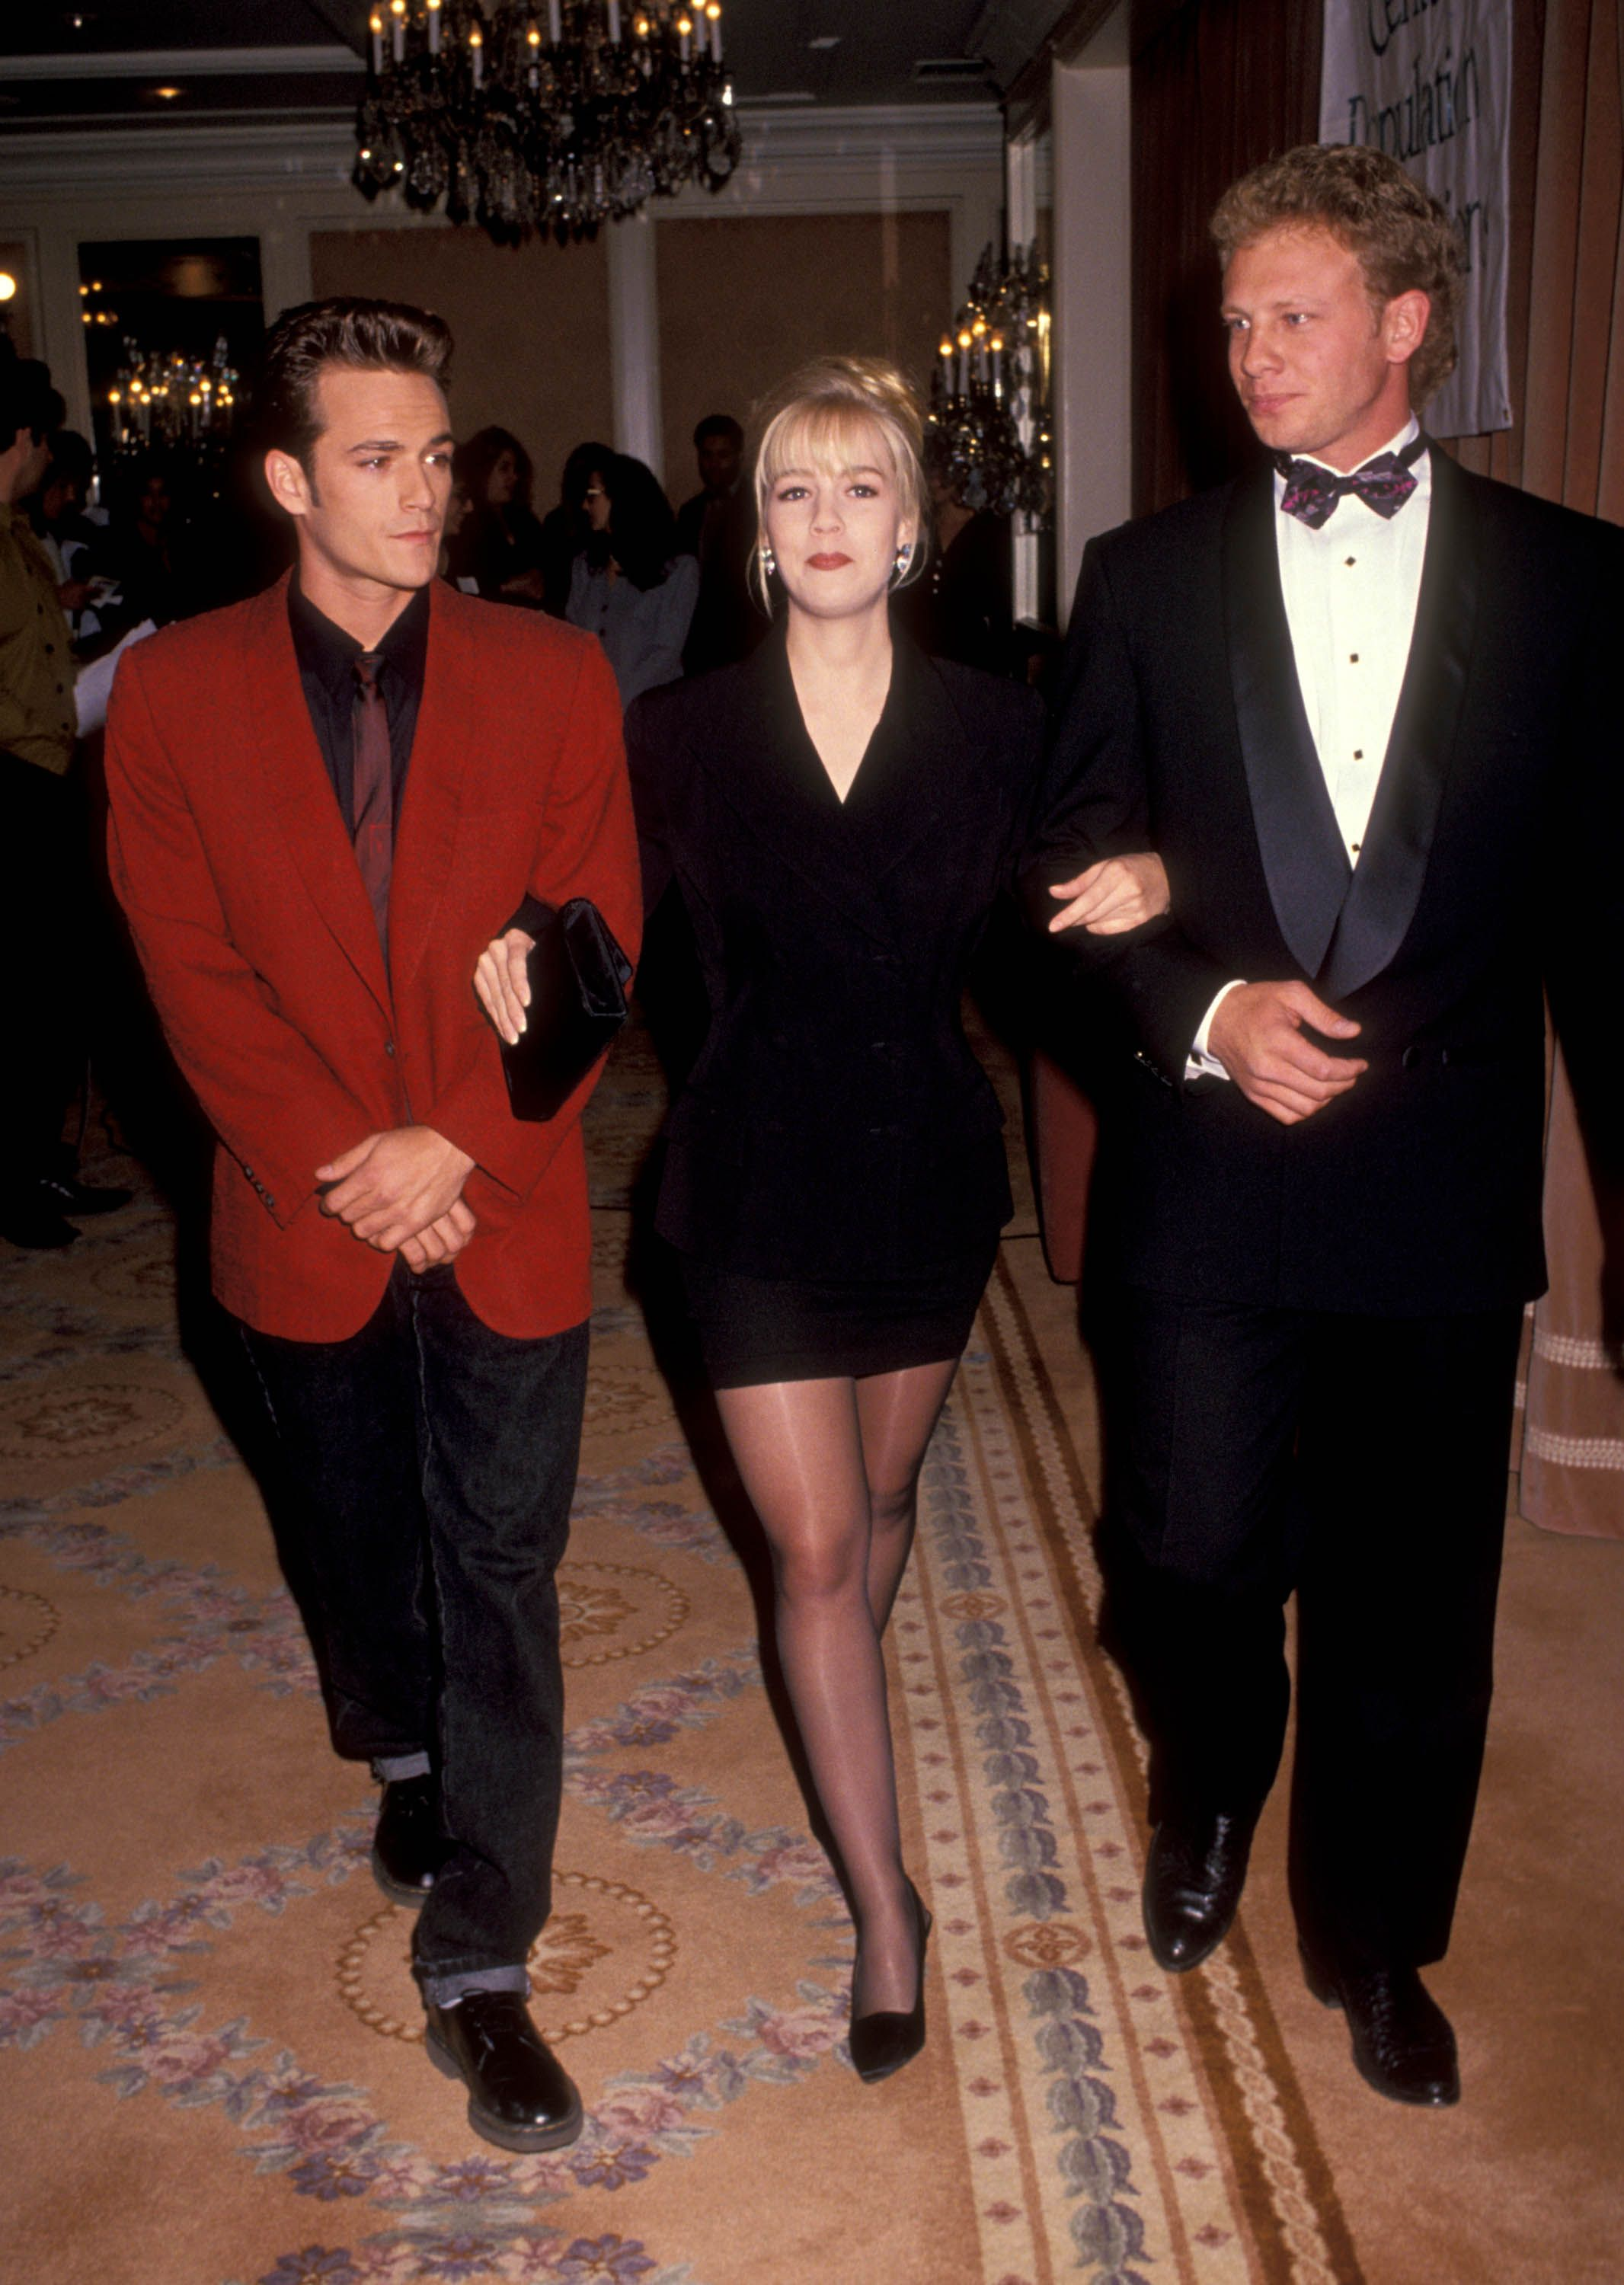 Perry, Jennie Garth, and Ian Ziering attend the 7th Annual Nancy Susan Reynolds Awards at the Regent Beverly Wilshire Hotel in 1991.